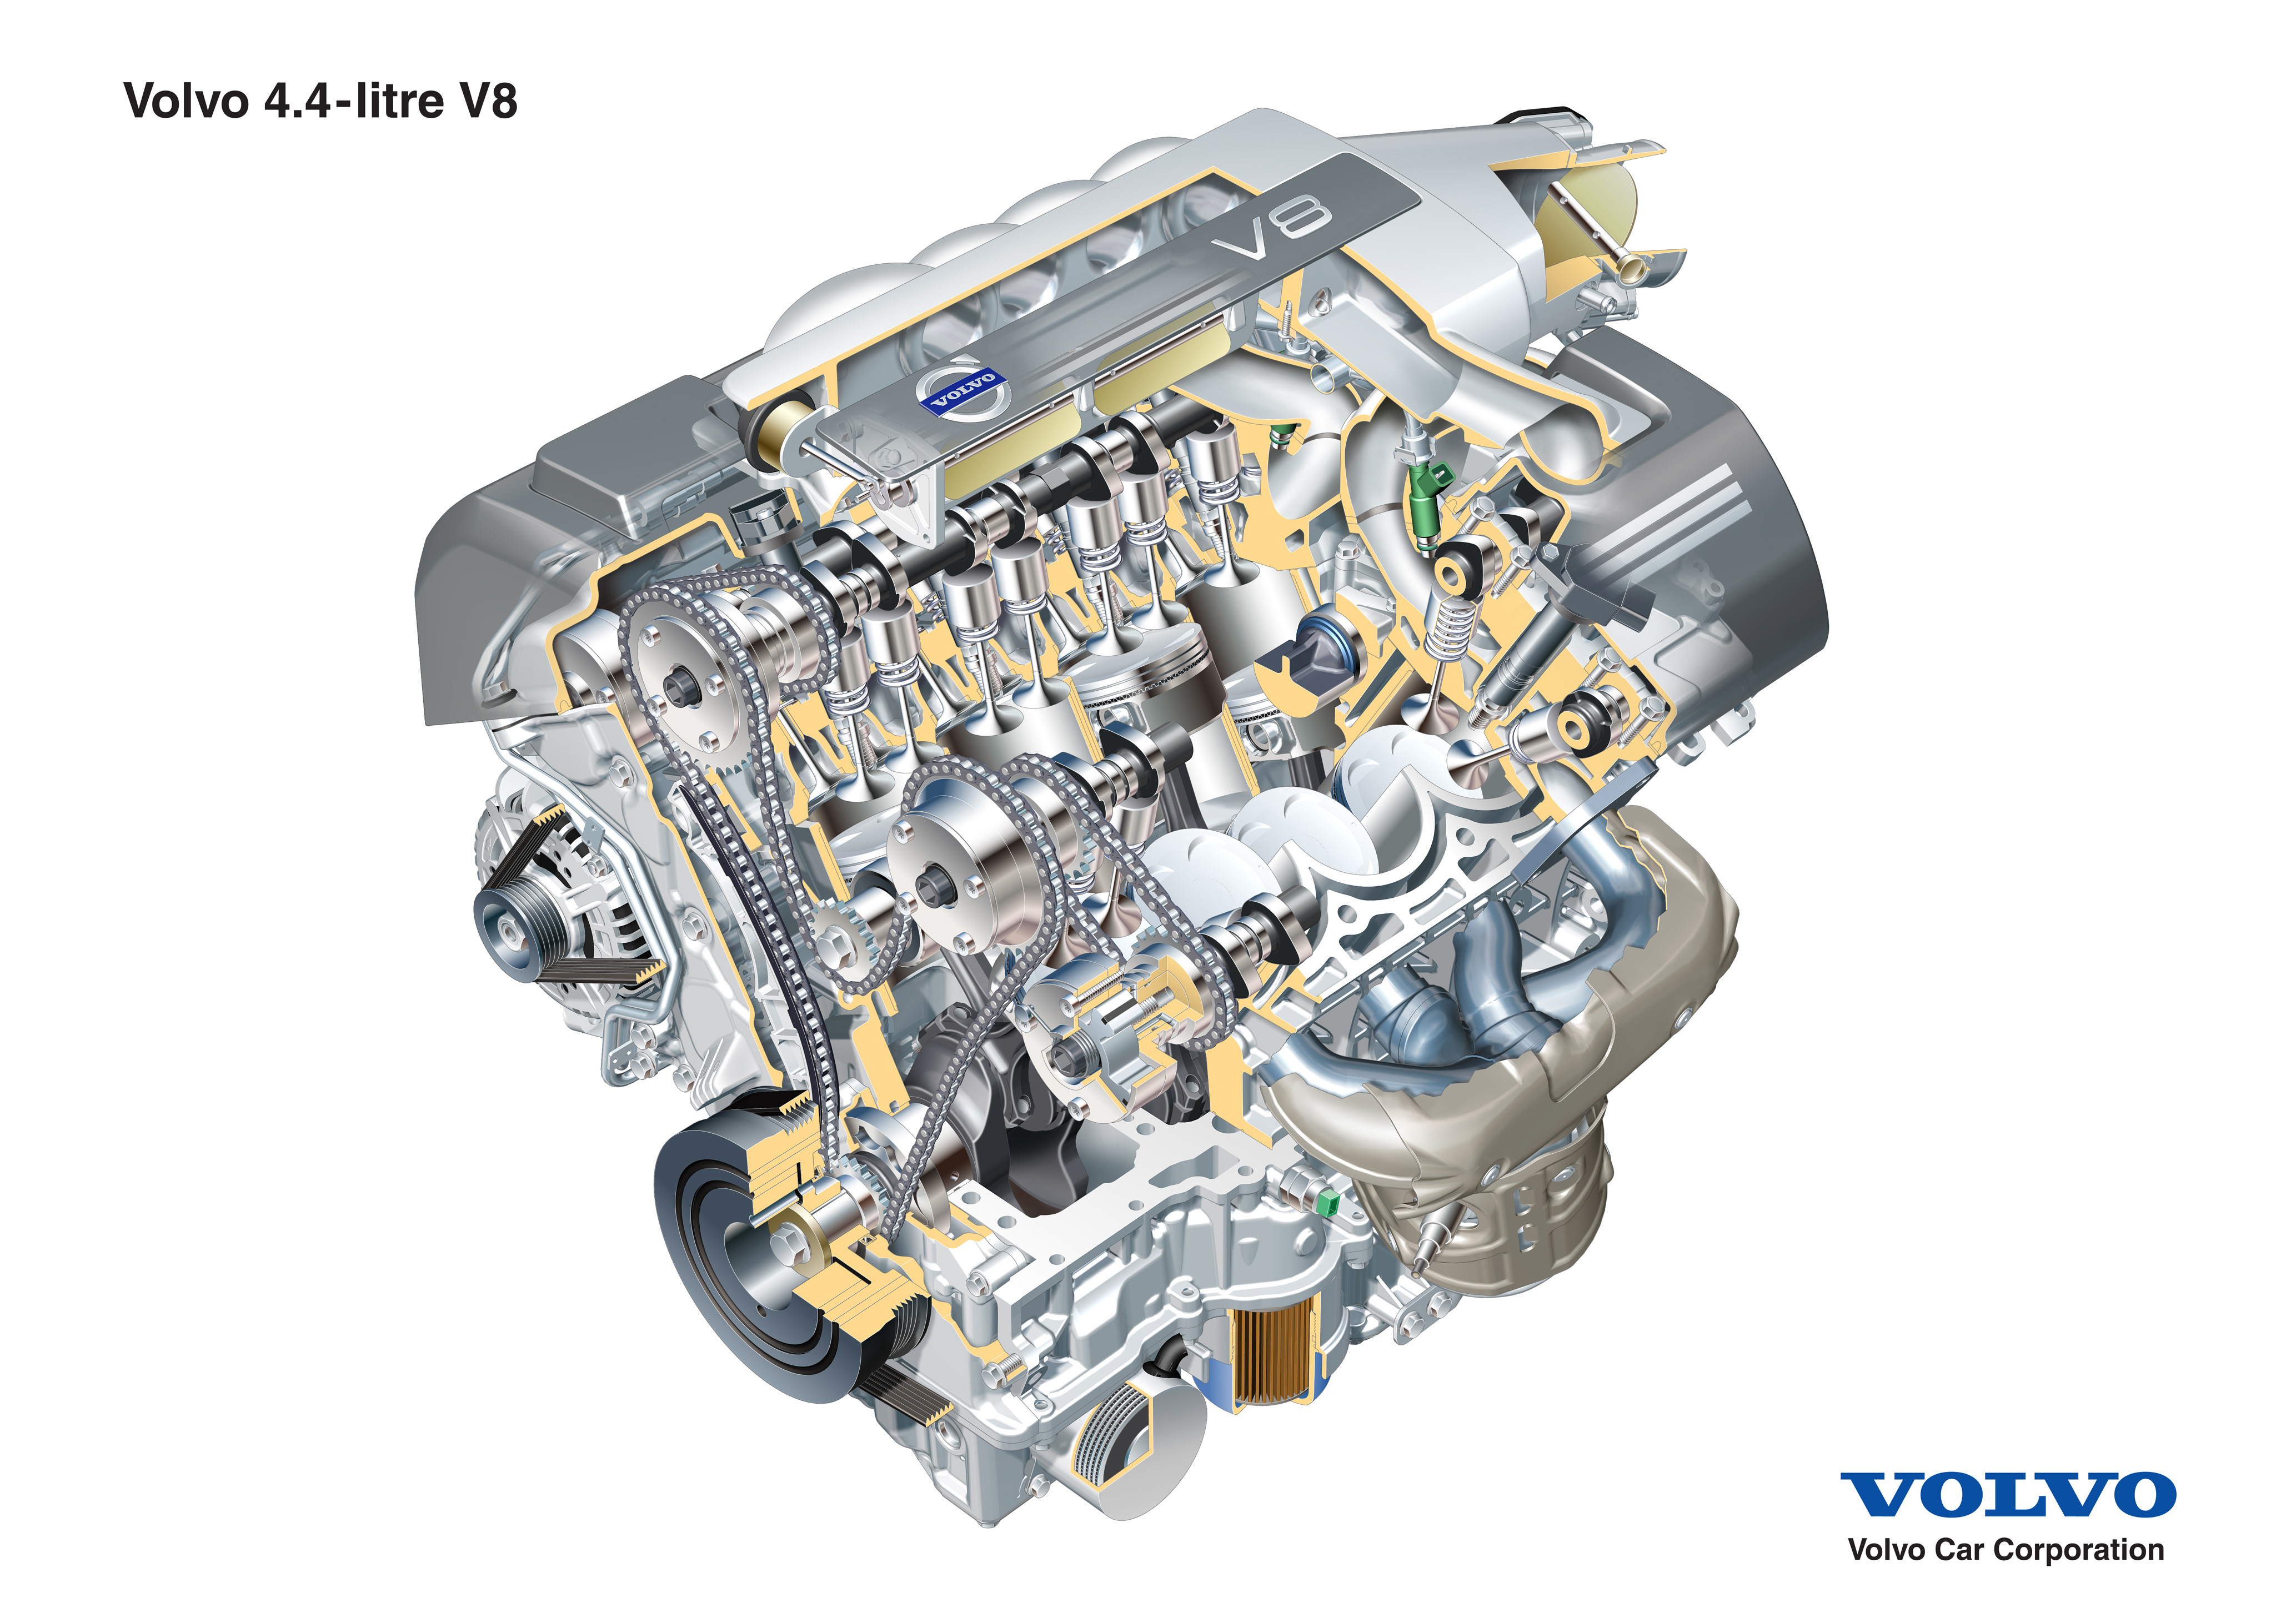 Volvo Xc90 Gets The State Of The Art V8 Powertrain For 2005